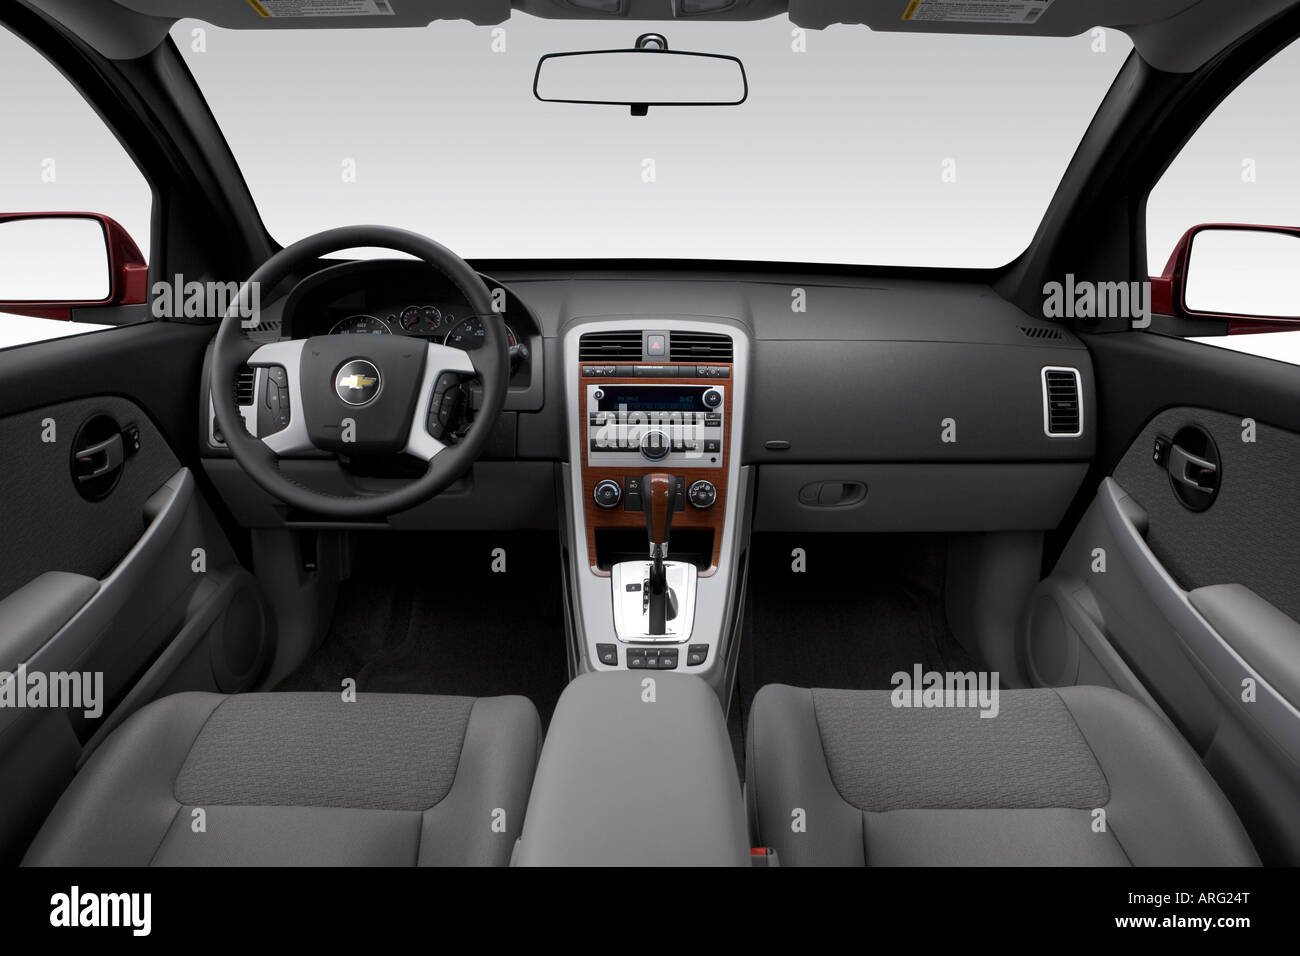 2007 chevrolet equinox lt in red - dashboard, center console, gear